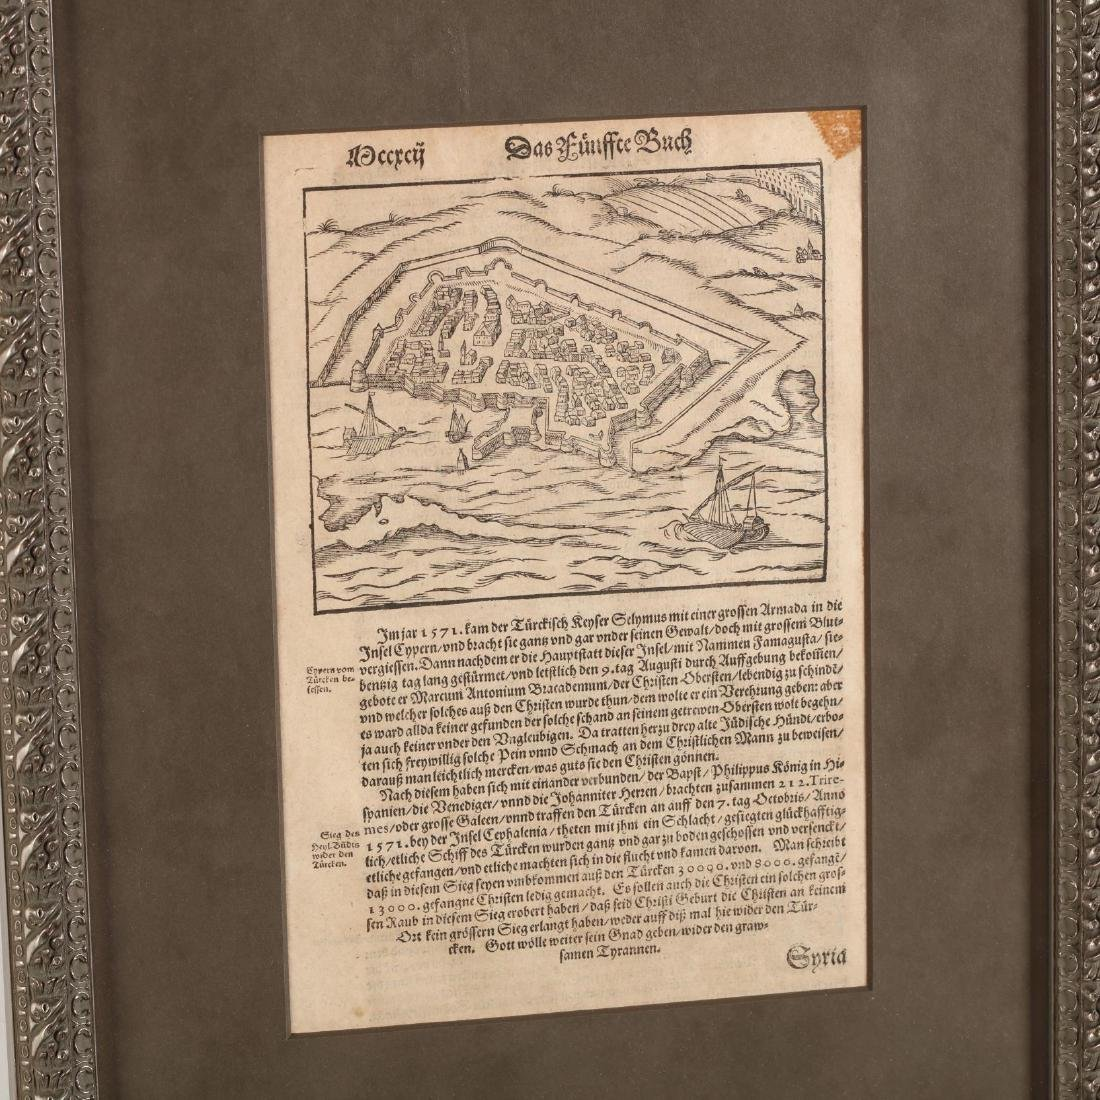 Two Disbound Book Leaves Showing the 1571 Siege of - 3